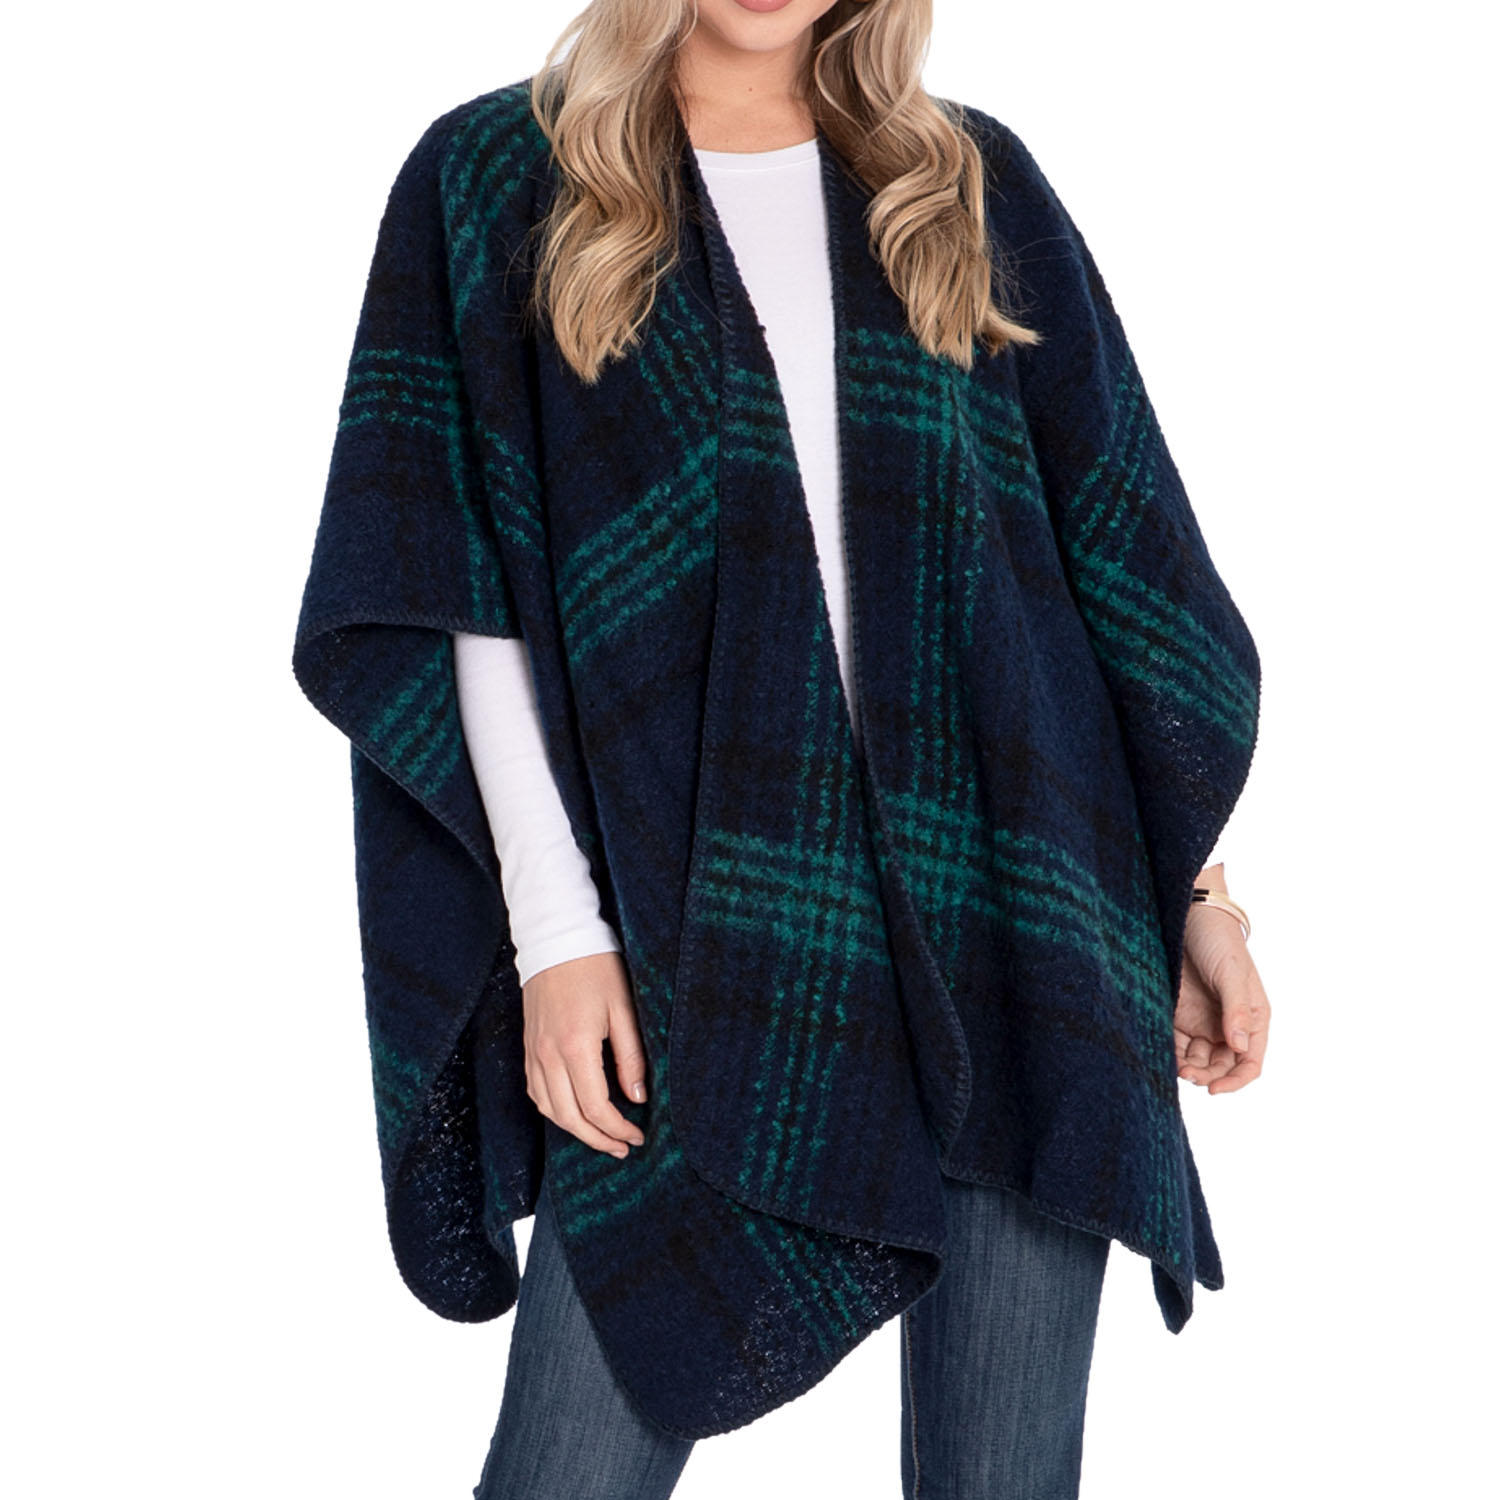 Woolrich Women's Textured Wrap